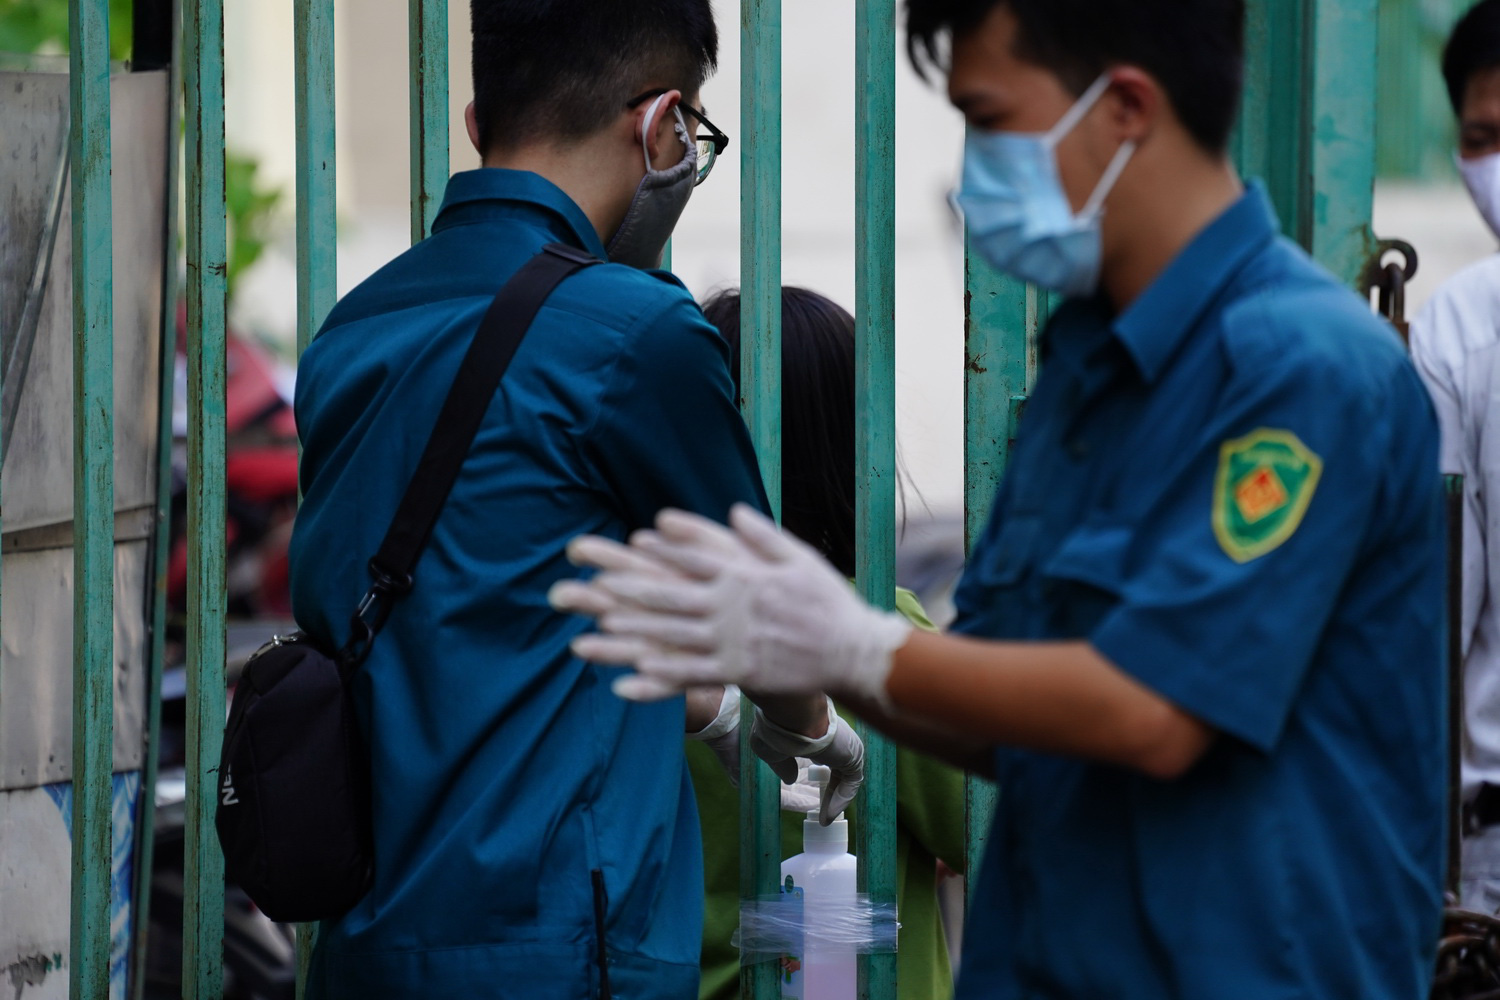 Two men who are tasked with guarding the apartment building wash their hands during the job. Photo: Ly Nguyen / Tuoi Tre